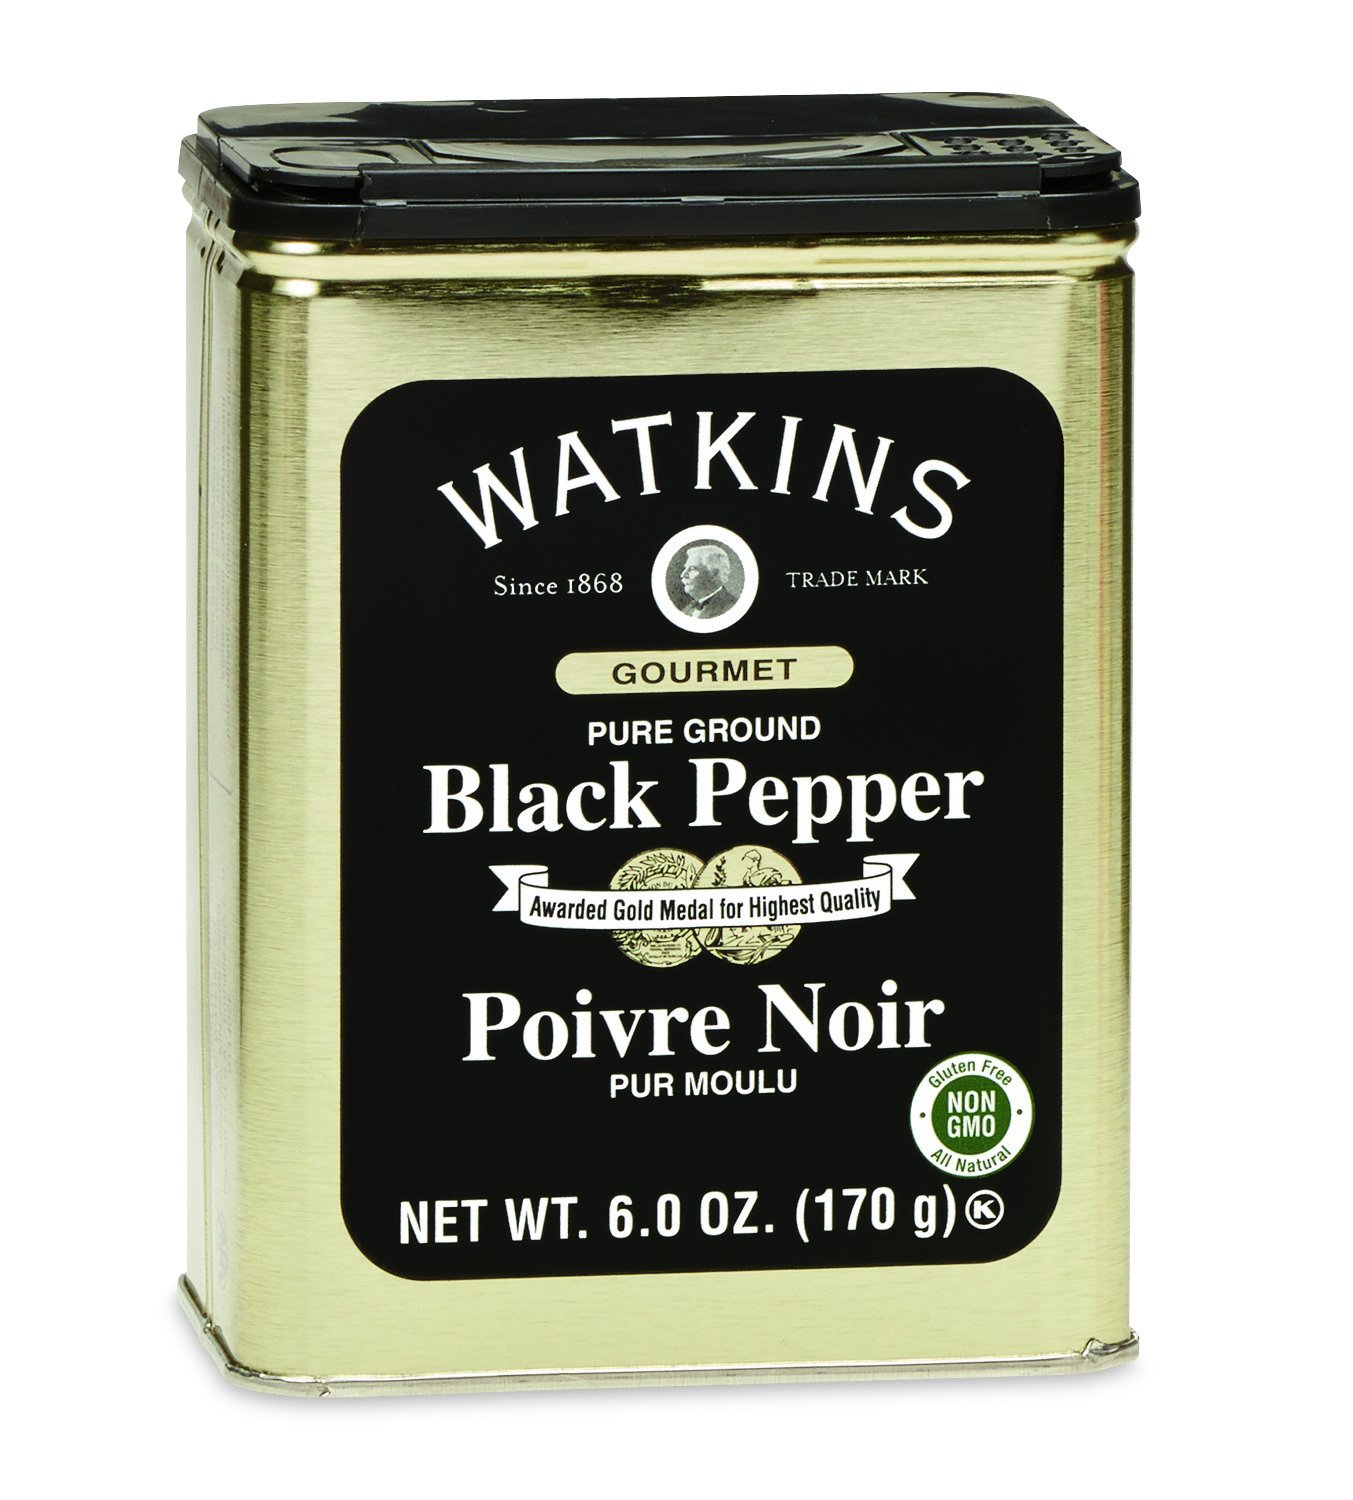 Watkins Gourmet Spice Tin, Pure Ground Black Pepper, 6 oz. Tin, 1-Pack